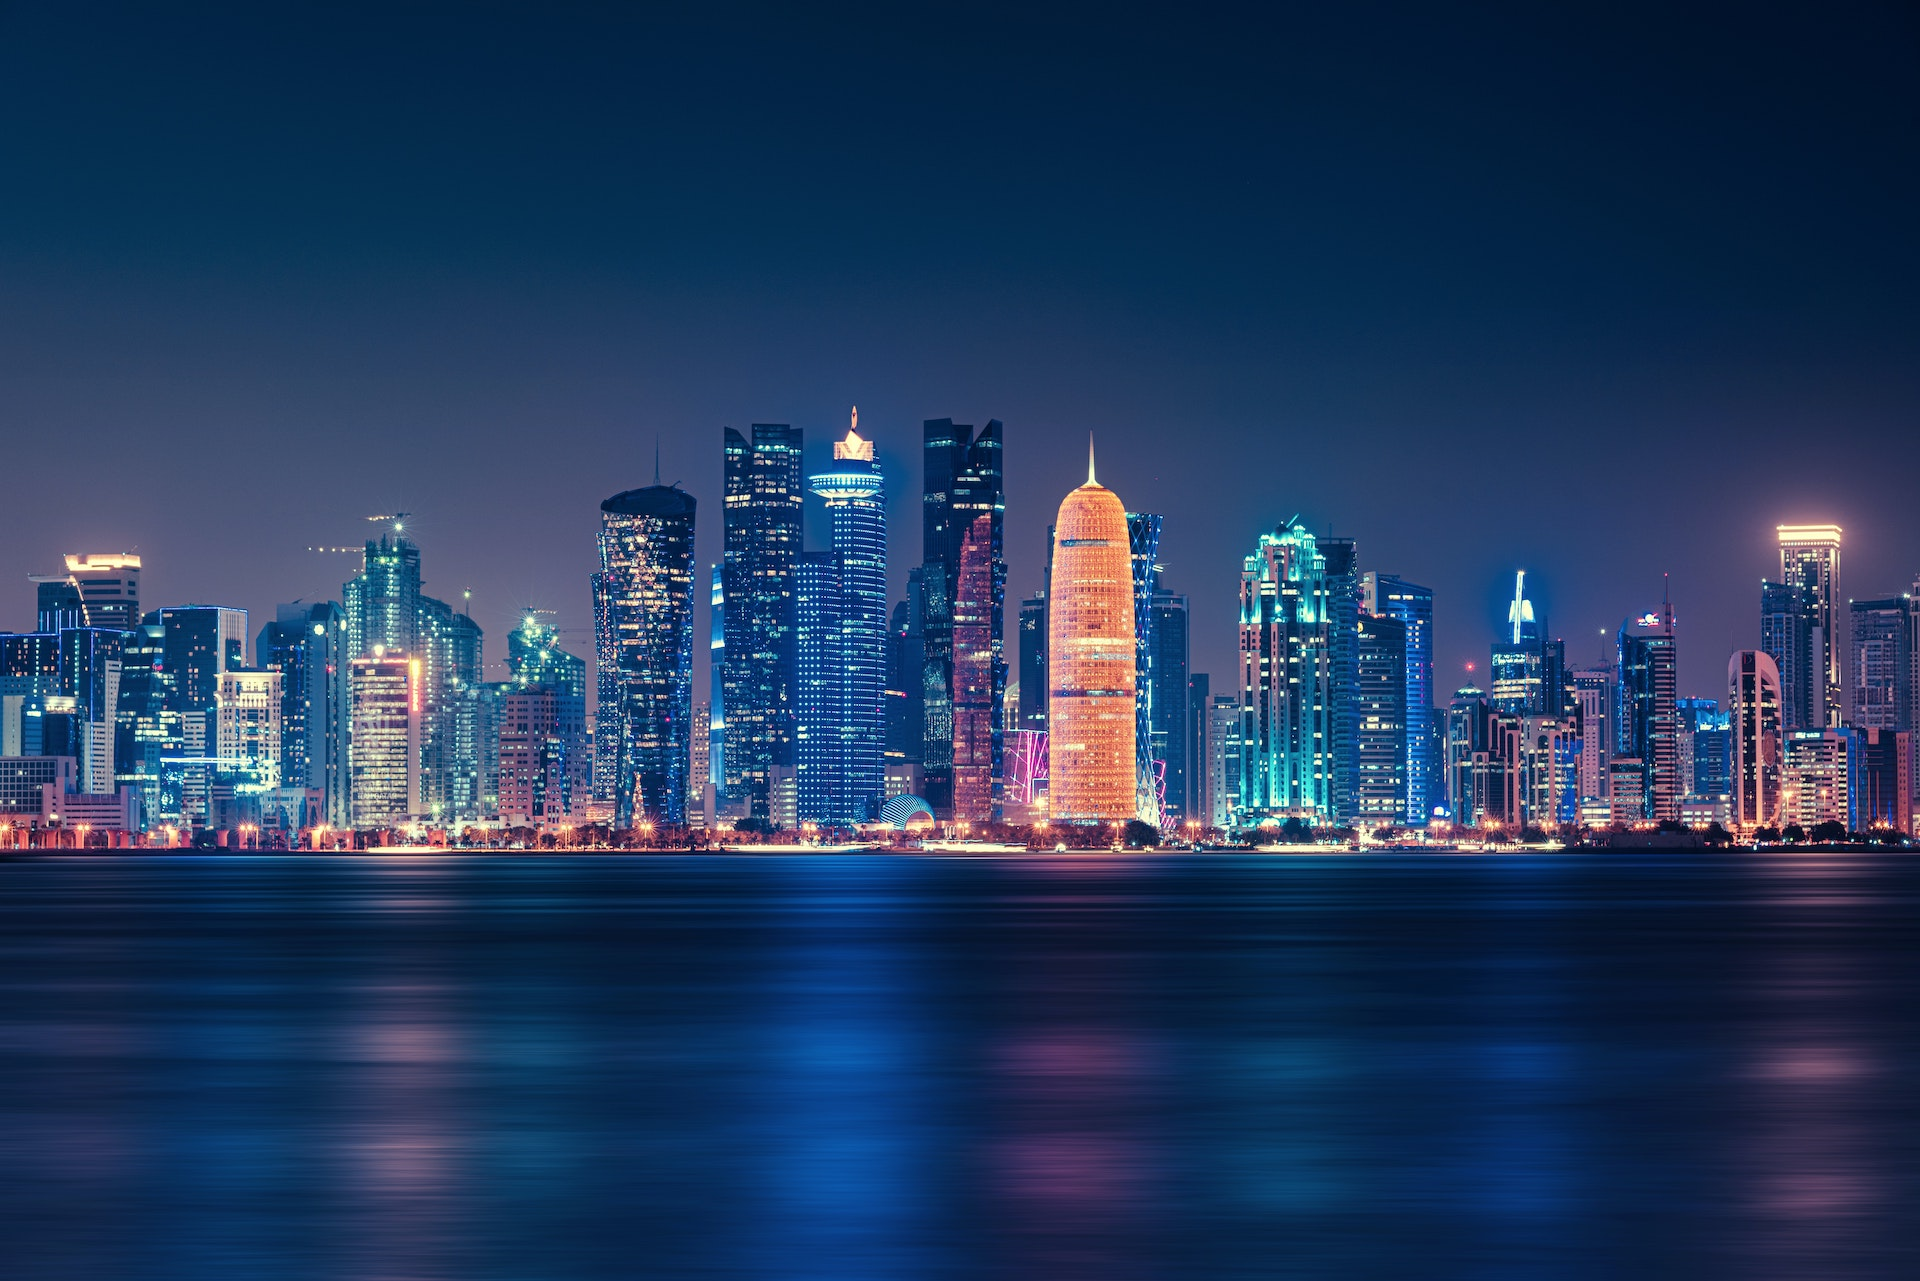 Qatar will host the Football World Cup in 2022, and myriad events in the lead-up. Nick Walton explores this tiny, desert nation to see how the Qatari are preparing for the future while safeguarding their past.